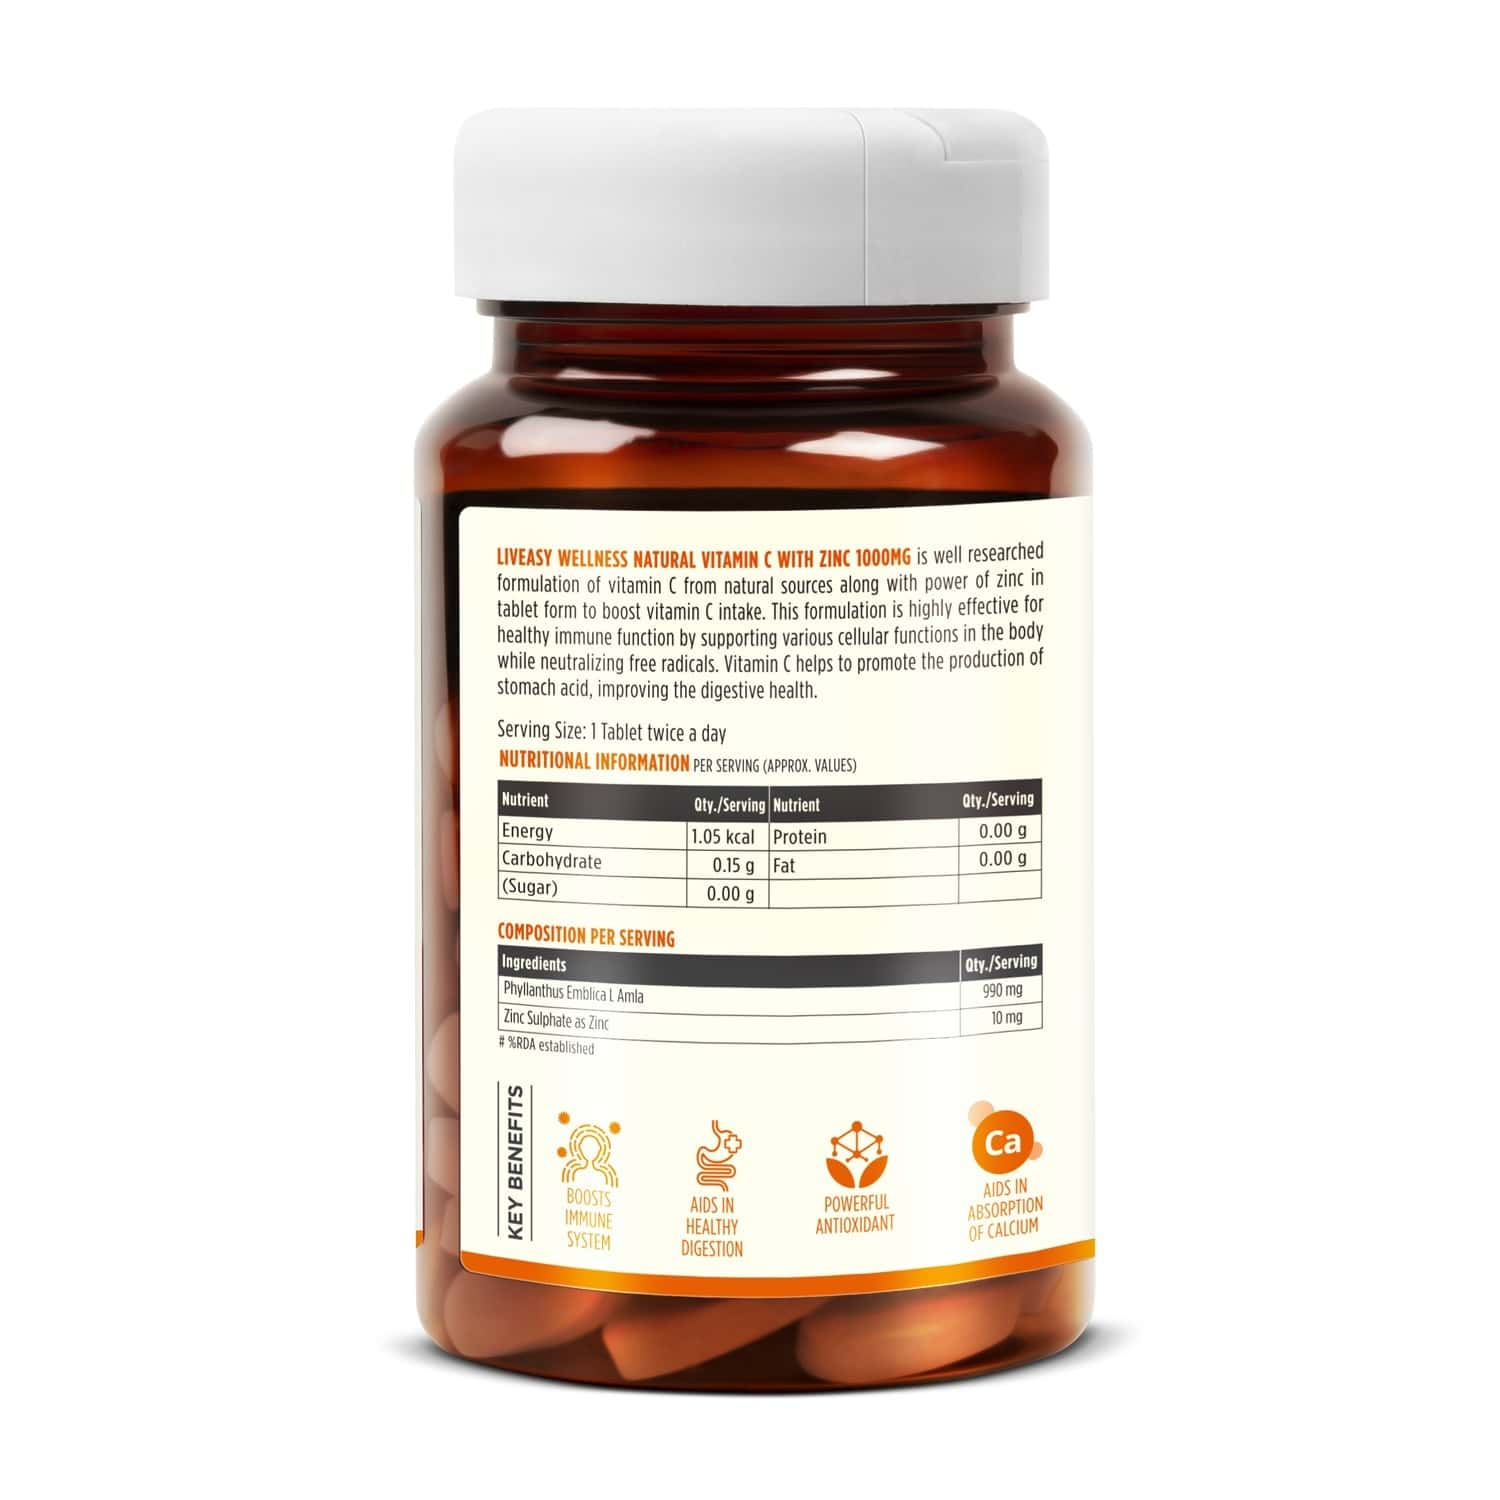 Liveasy Wellness Vitamin C (990mg) With Zinc (10mg) - Powerful Immunity Booster - 60 Veg Tablets